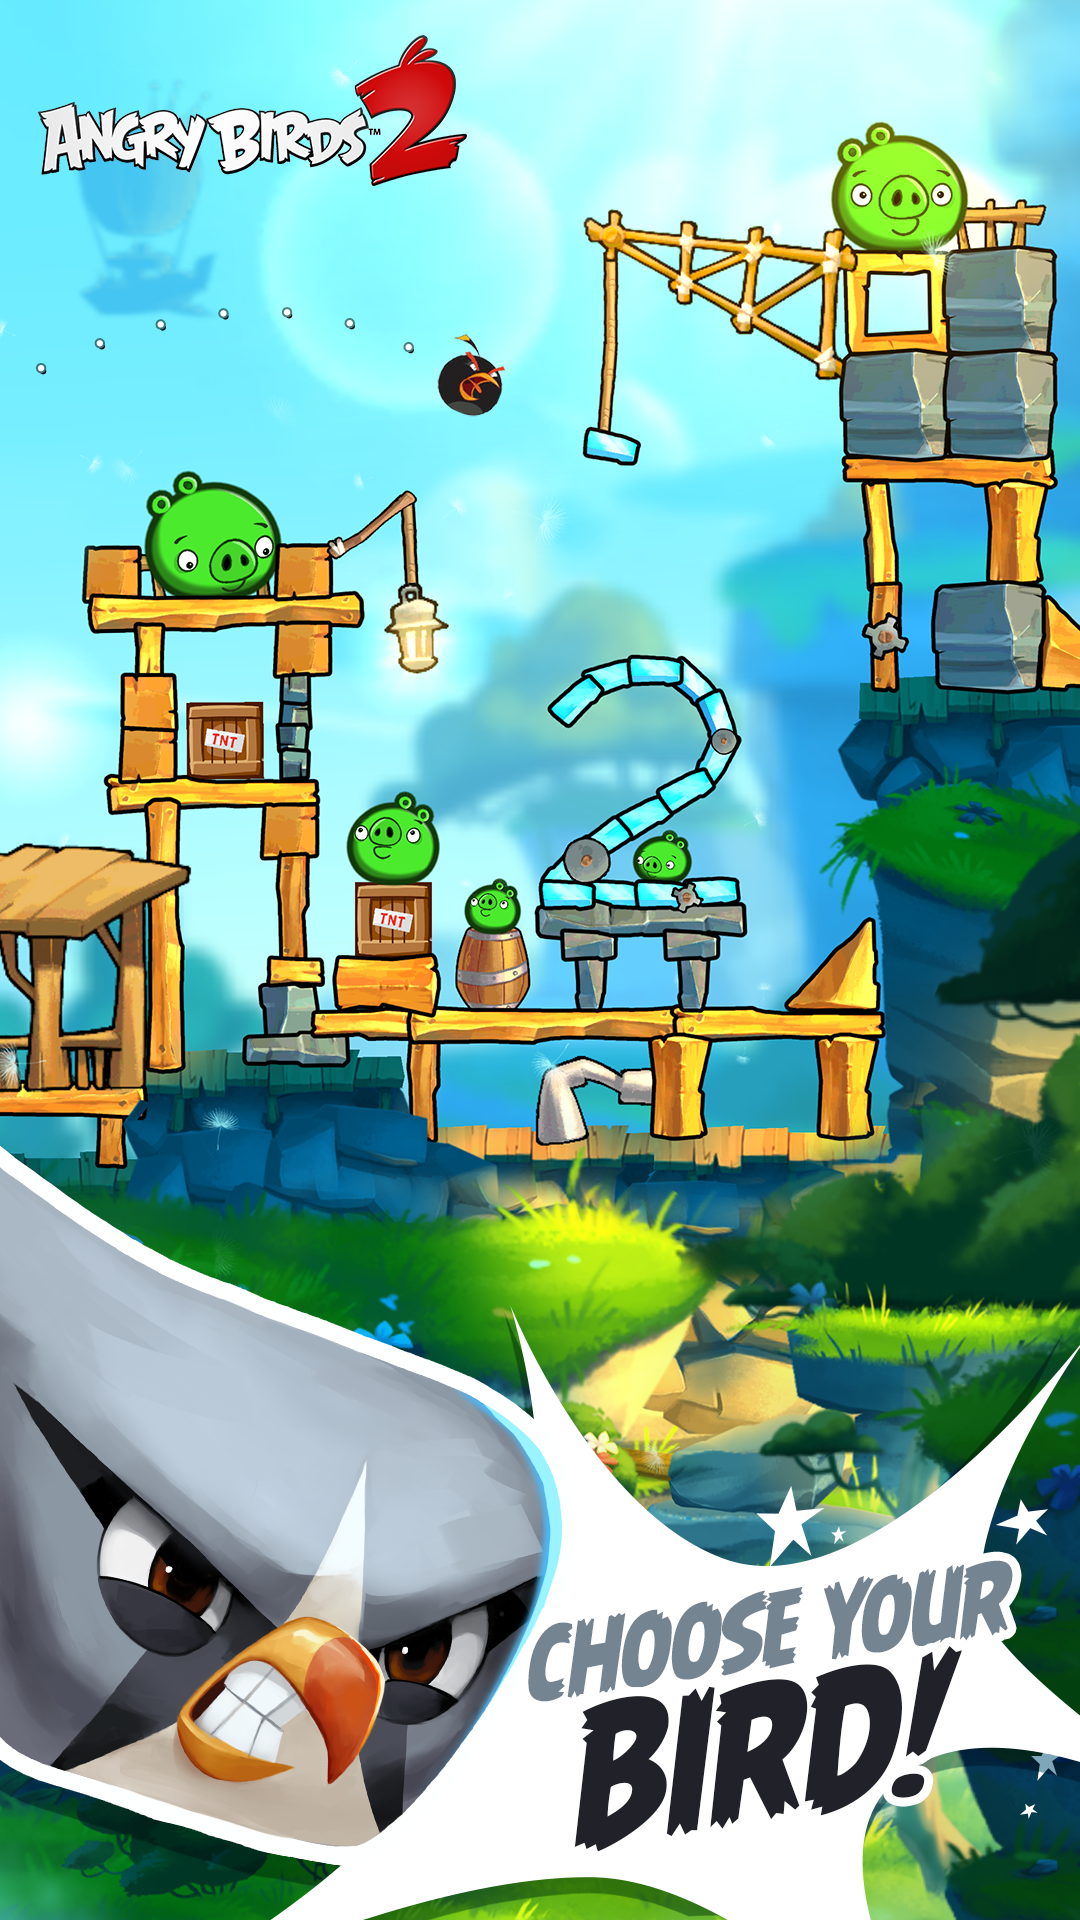 Angry Birds 2 screenshot #8